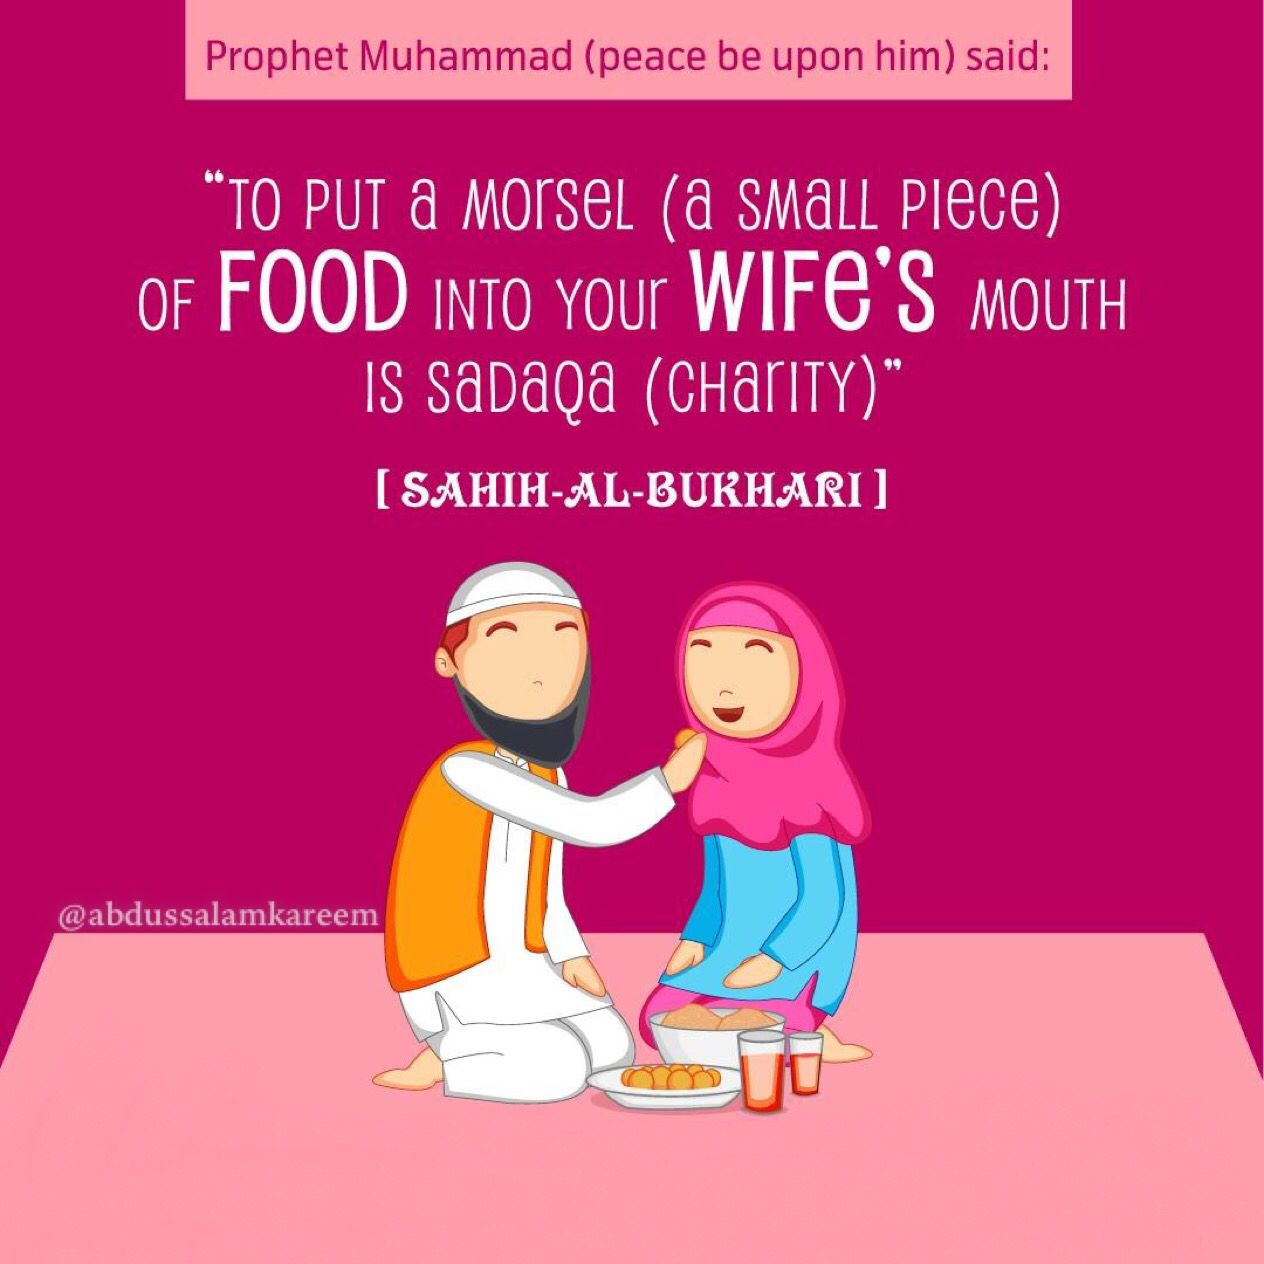 Dear Future Husband Islamic Quotes: Dear Husband 😊 Love ️ Care For Your Wife 💞